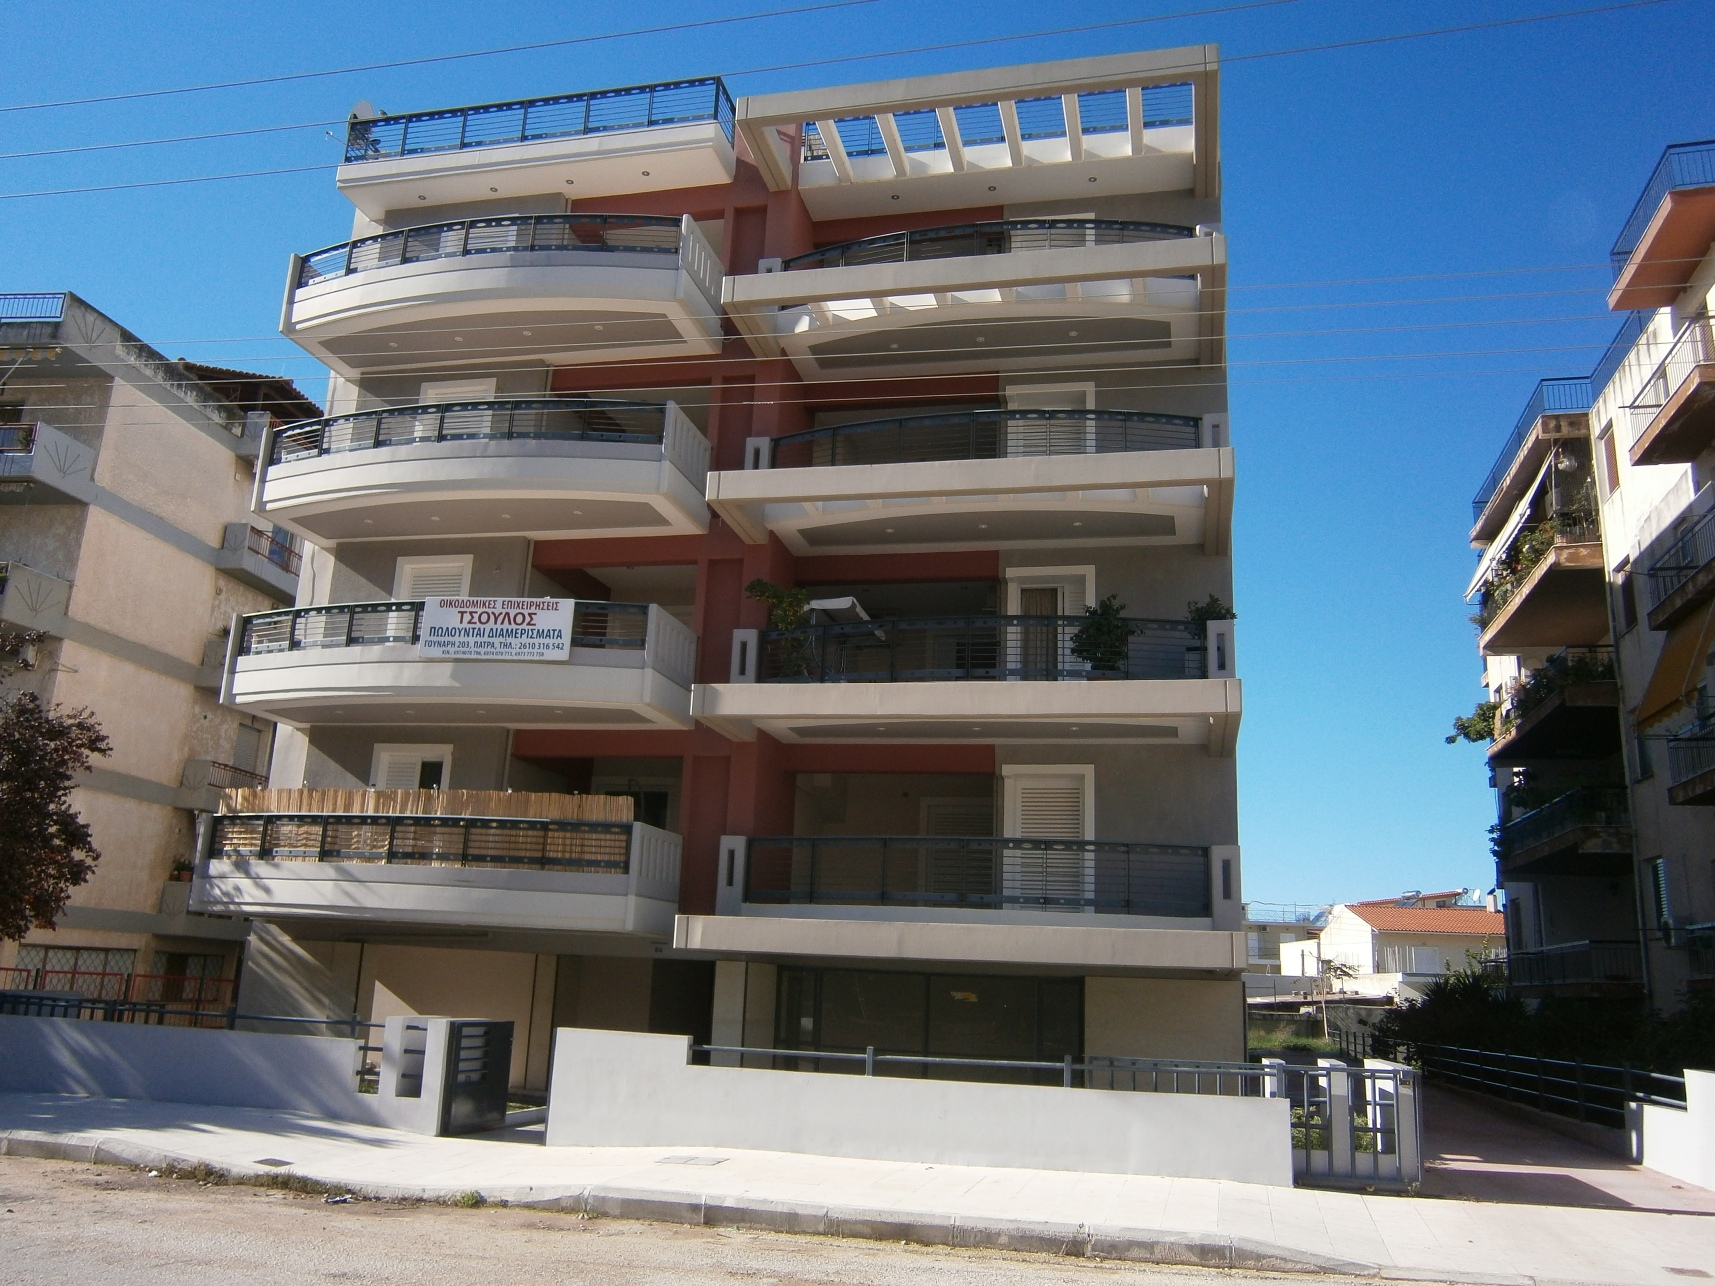 Three Bedrooms For Rent 84 Gorgopotamou St And Evoias St Patras New 4 Storey